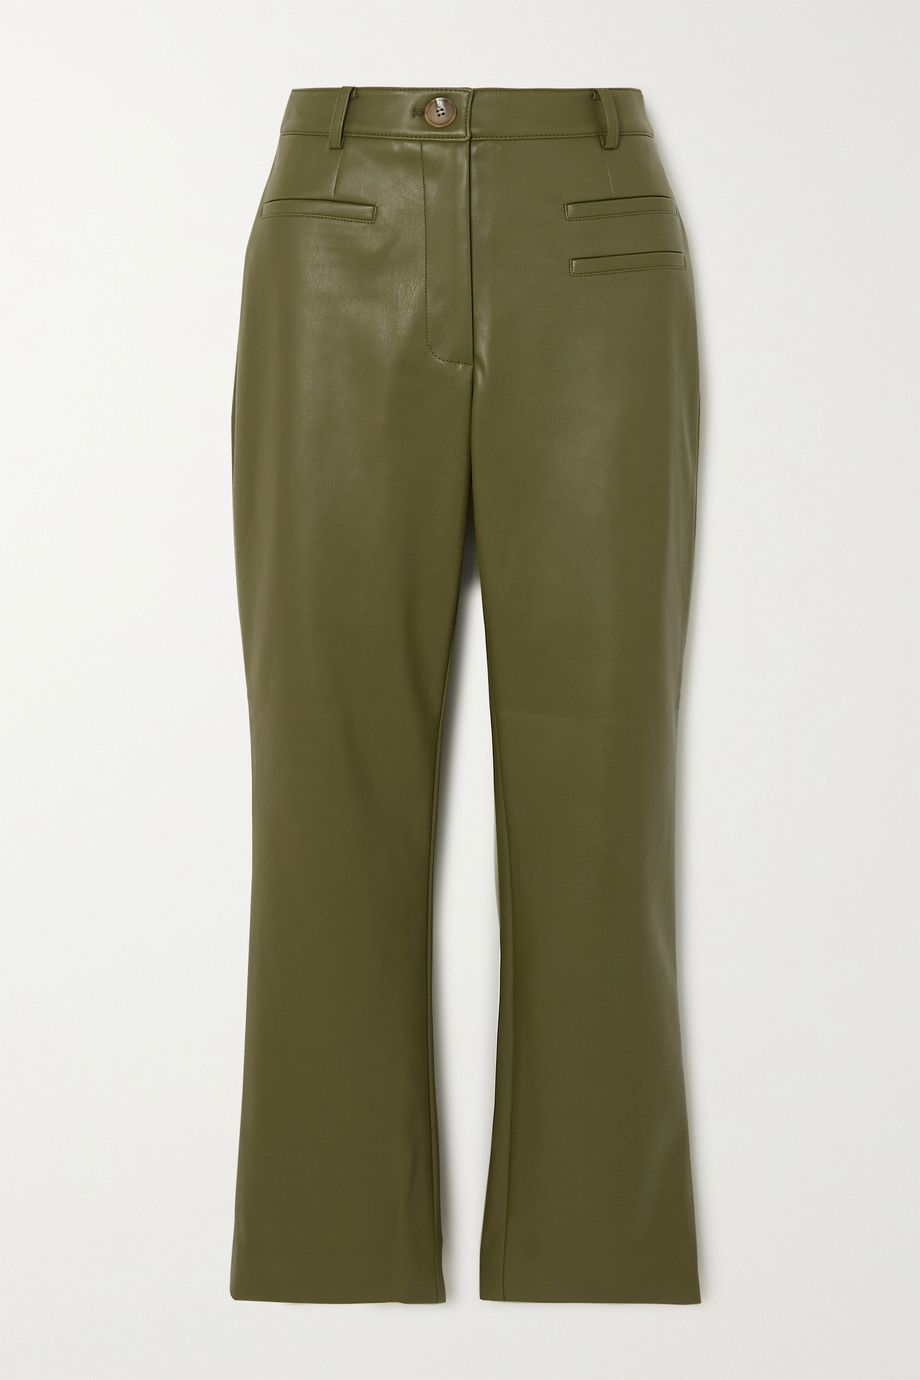 REJINA PYO + NET SUSTAIN Finley cropped faux leather slim-fit pants